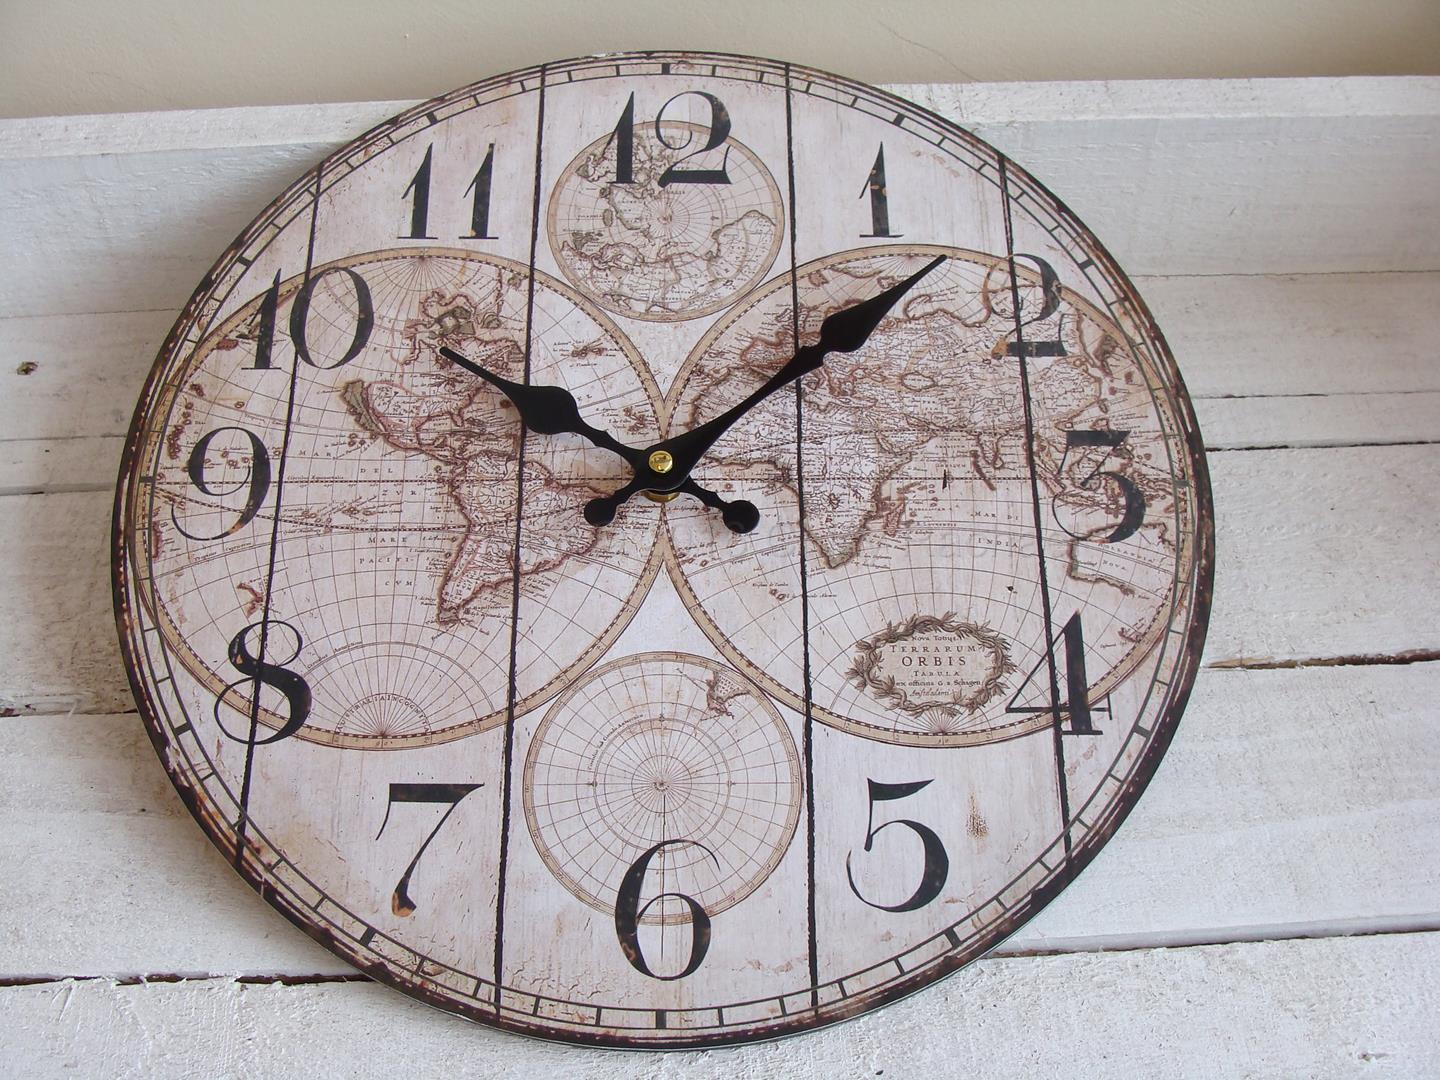 Small vintage world map wall clock chicy rachael small world map wall clock gumiabroncs Gallery